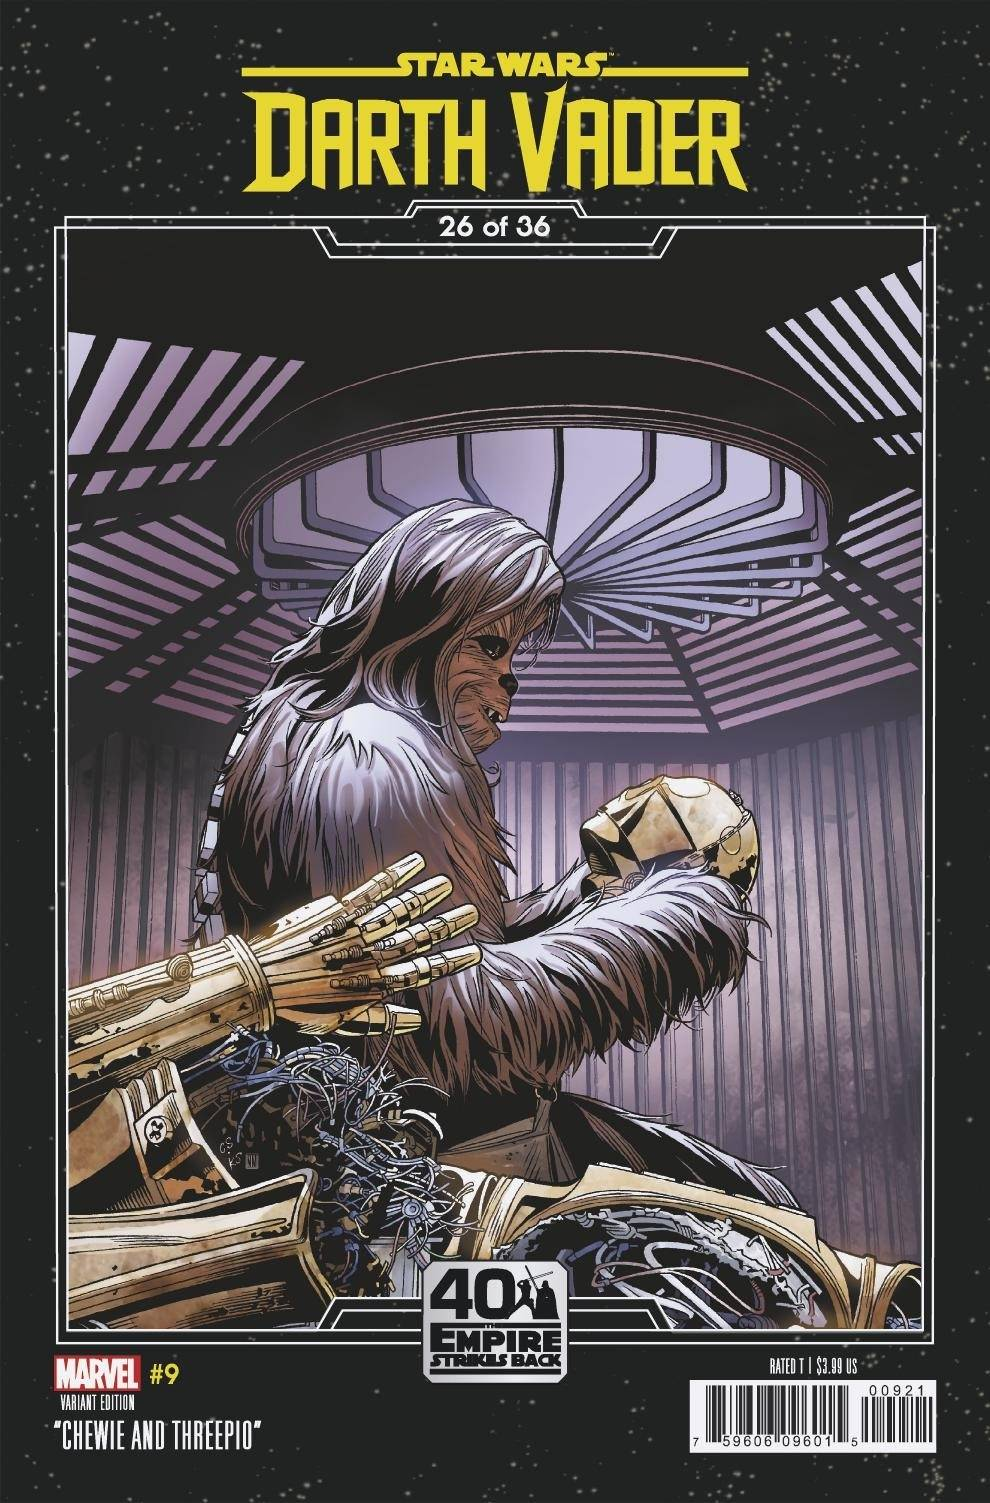 Darth Vader #9 (Chris Sprouse The Empire Strikes Back Variant Cover 26 of 36) (13.01.2021)